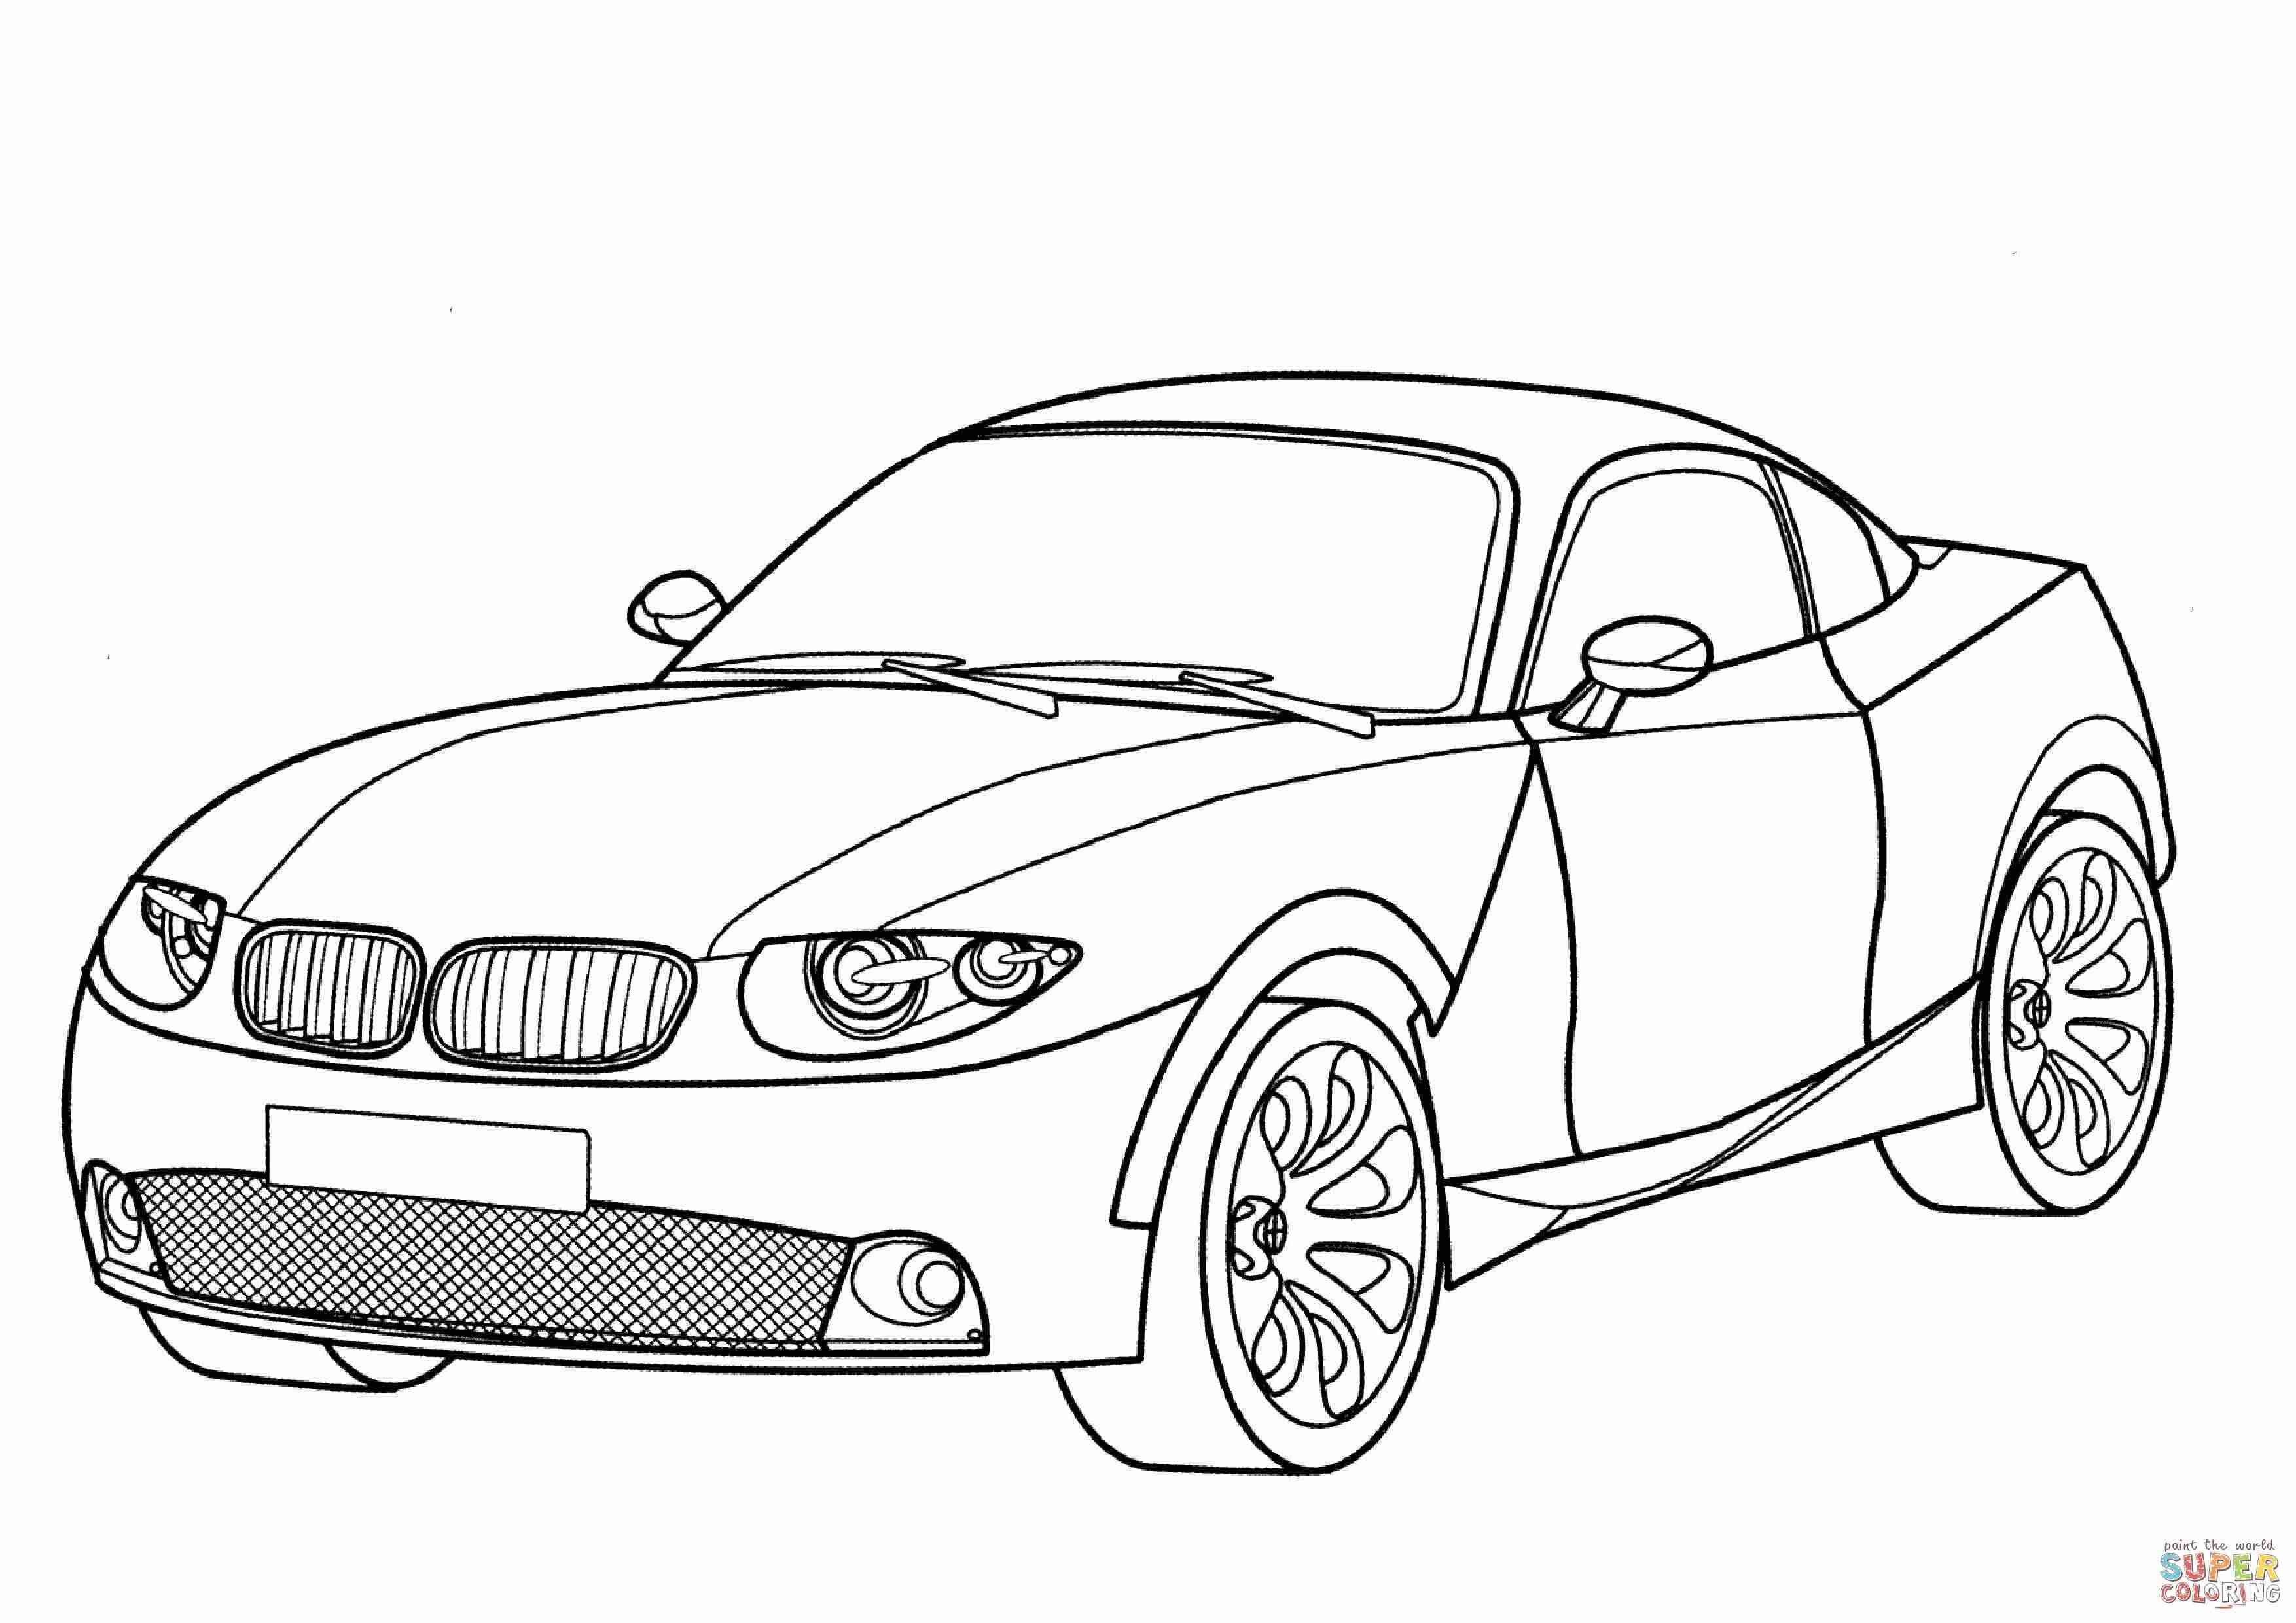 3508x2480 Bmw Coloring Pages To Download And Print For Free At Olegratiy